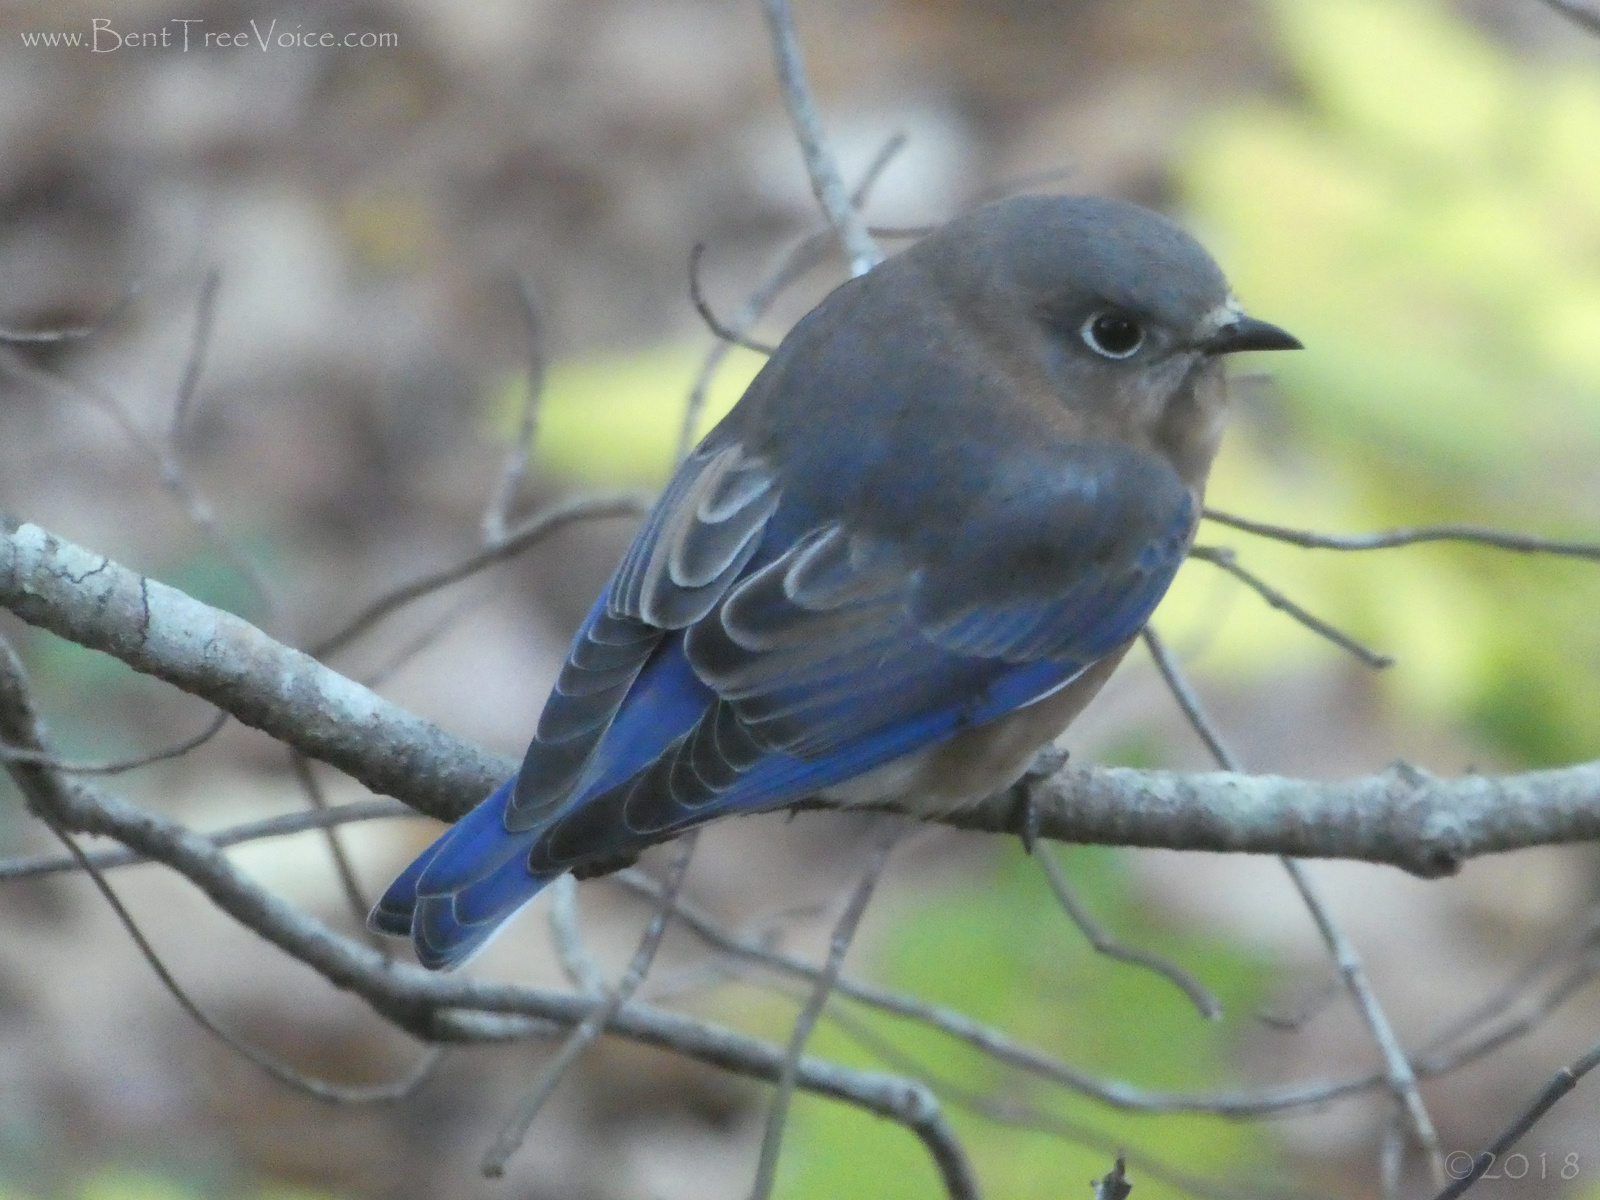 November 22, 2018 - bluebird in Bent Tree